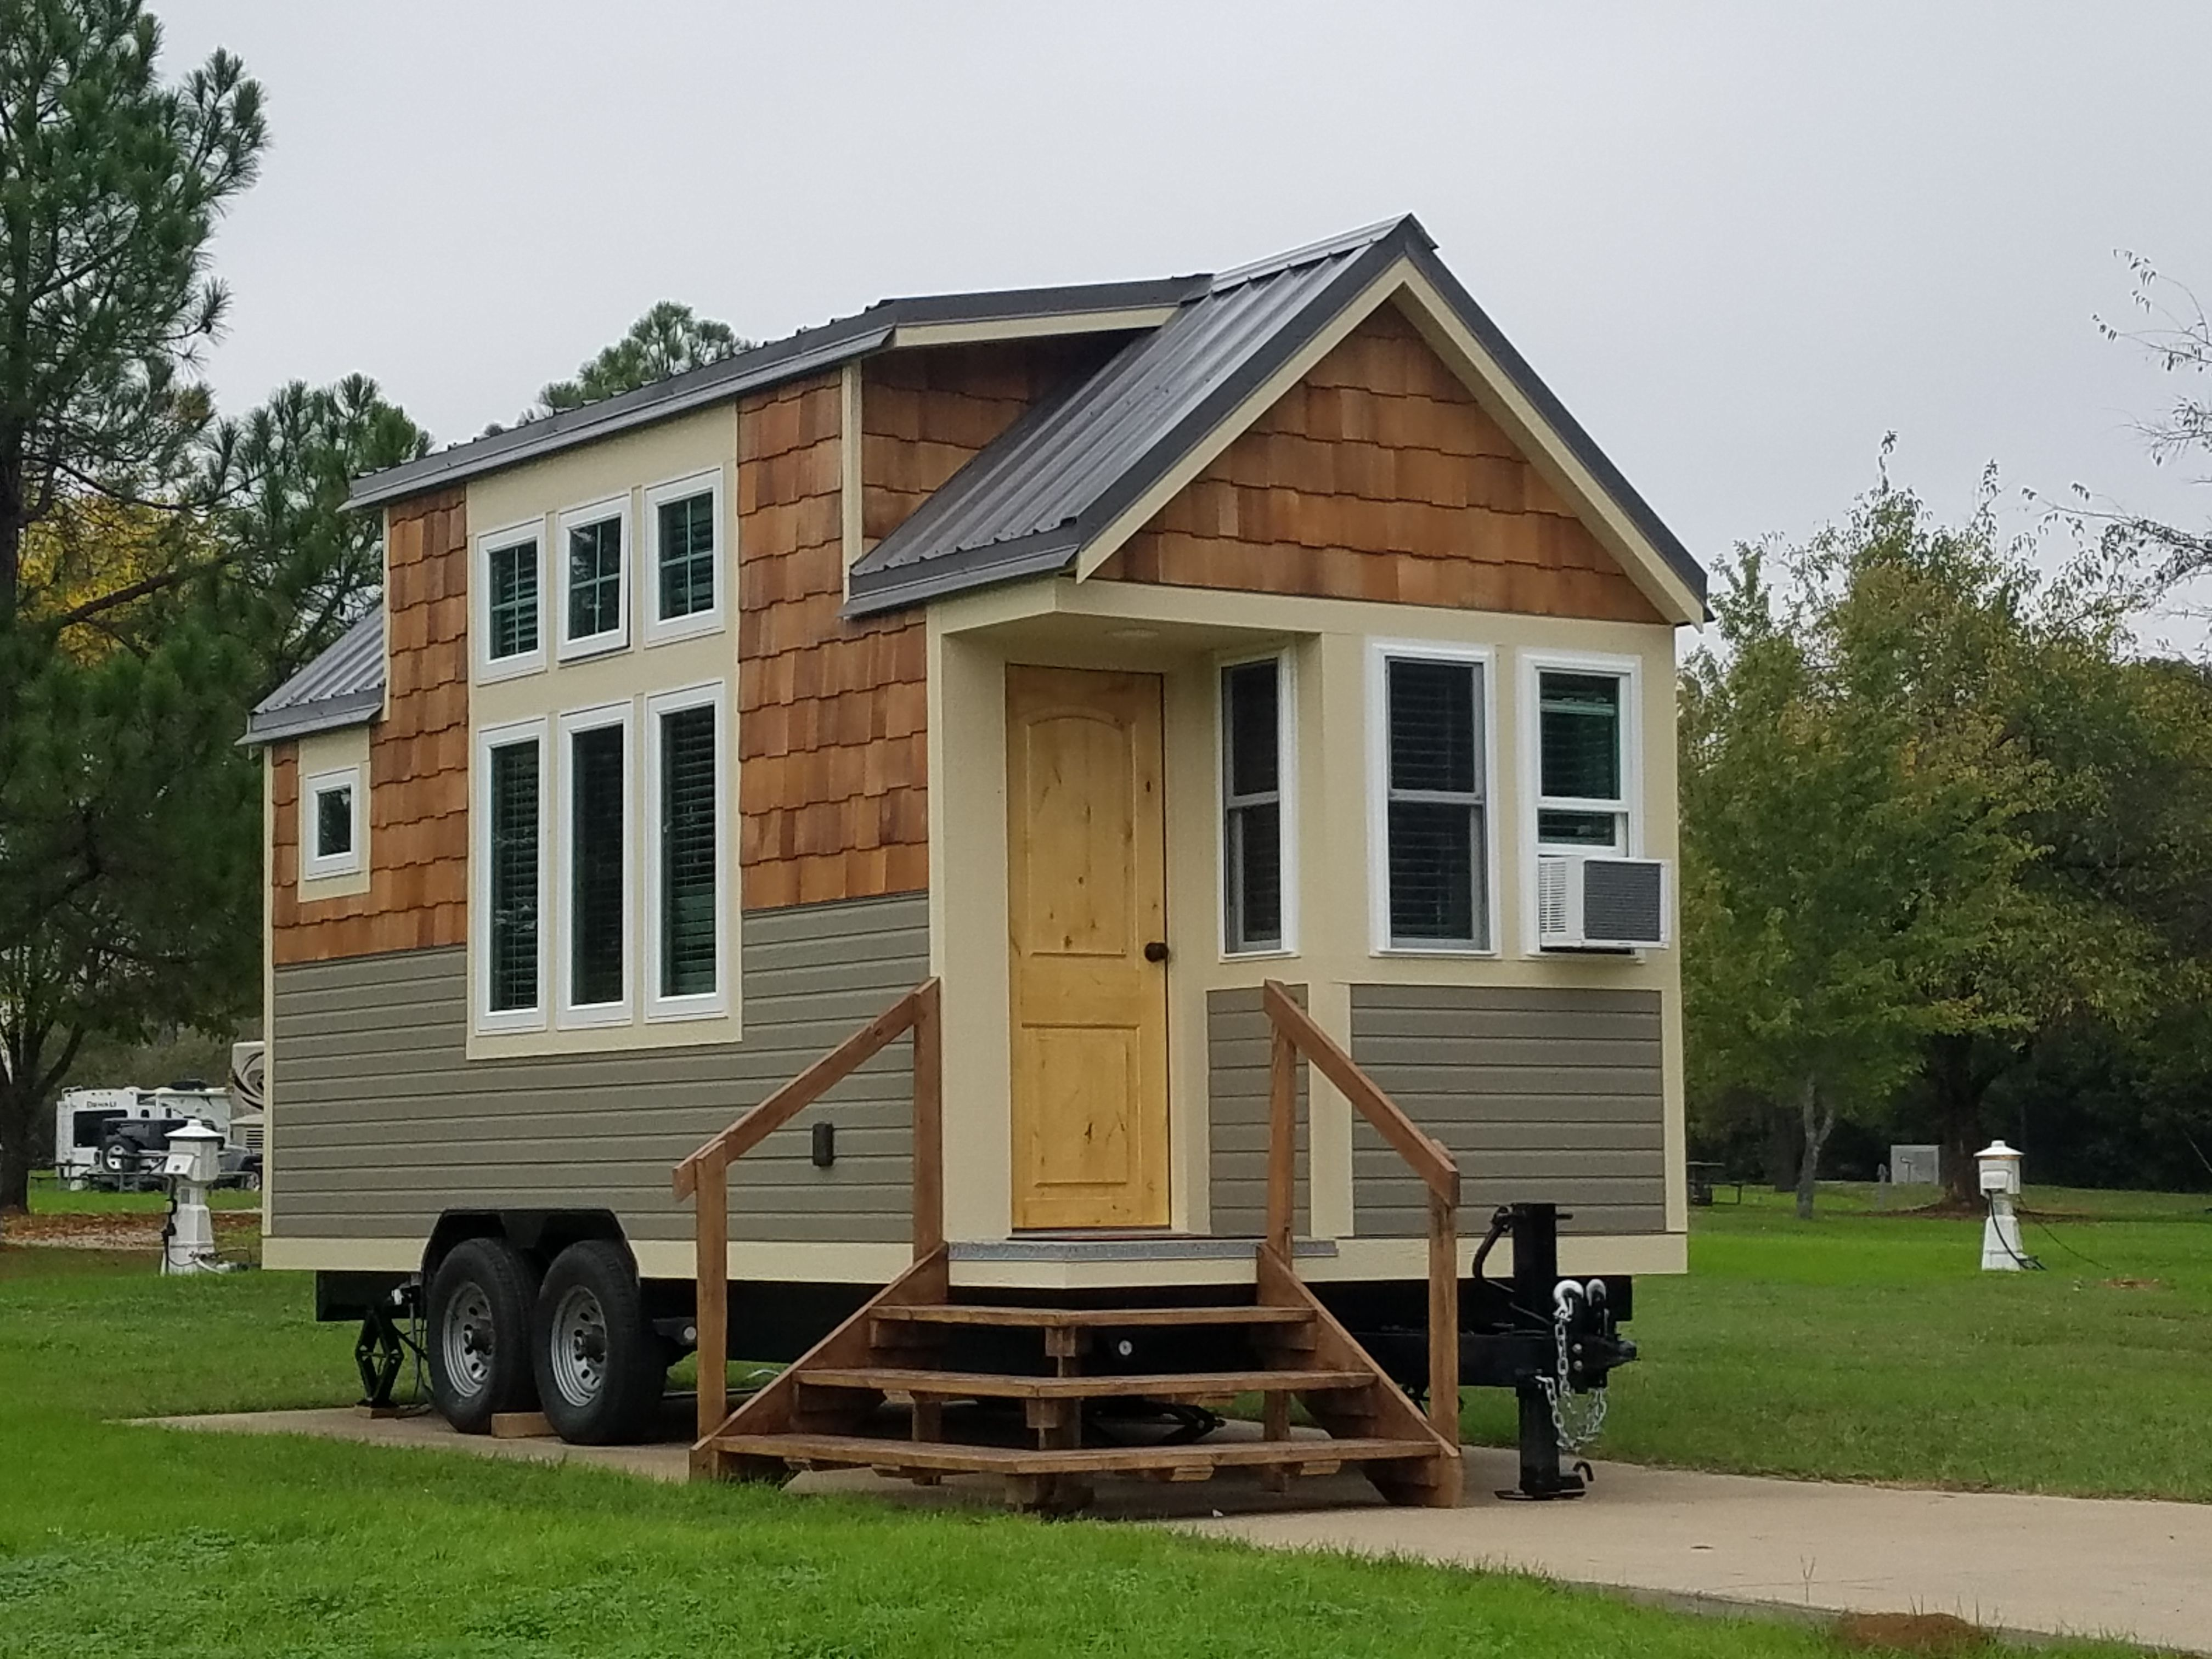 Texas Tiny Houses Tiny House Rentals With Images Tiny House